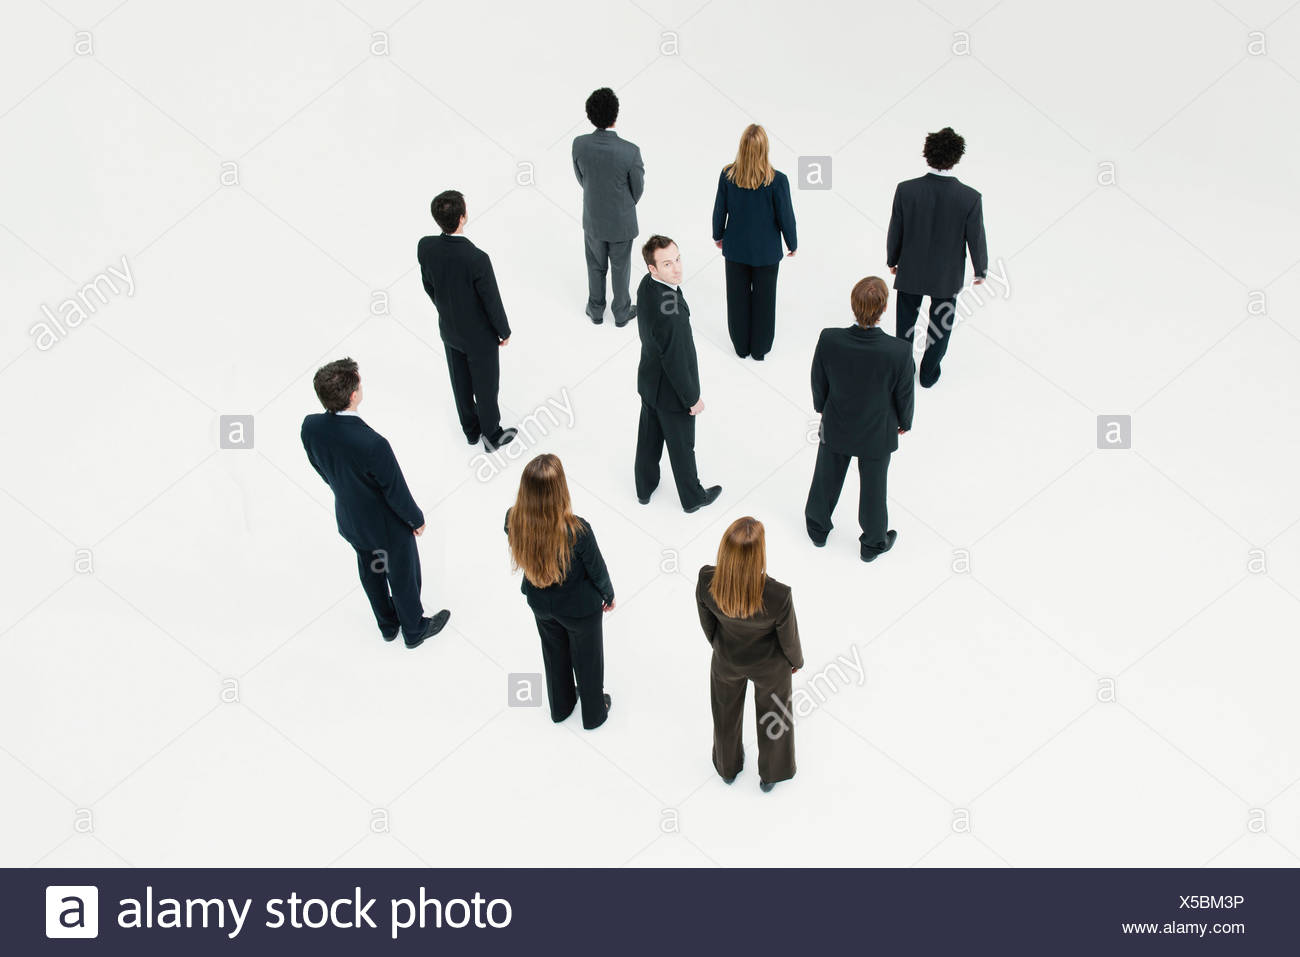 Businessman standing in midst of other anonymously dressed professionals - Stock Image